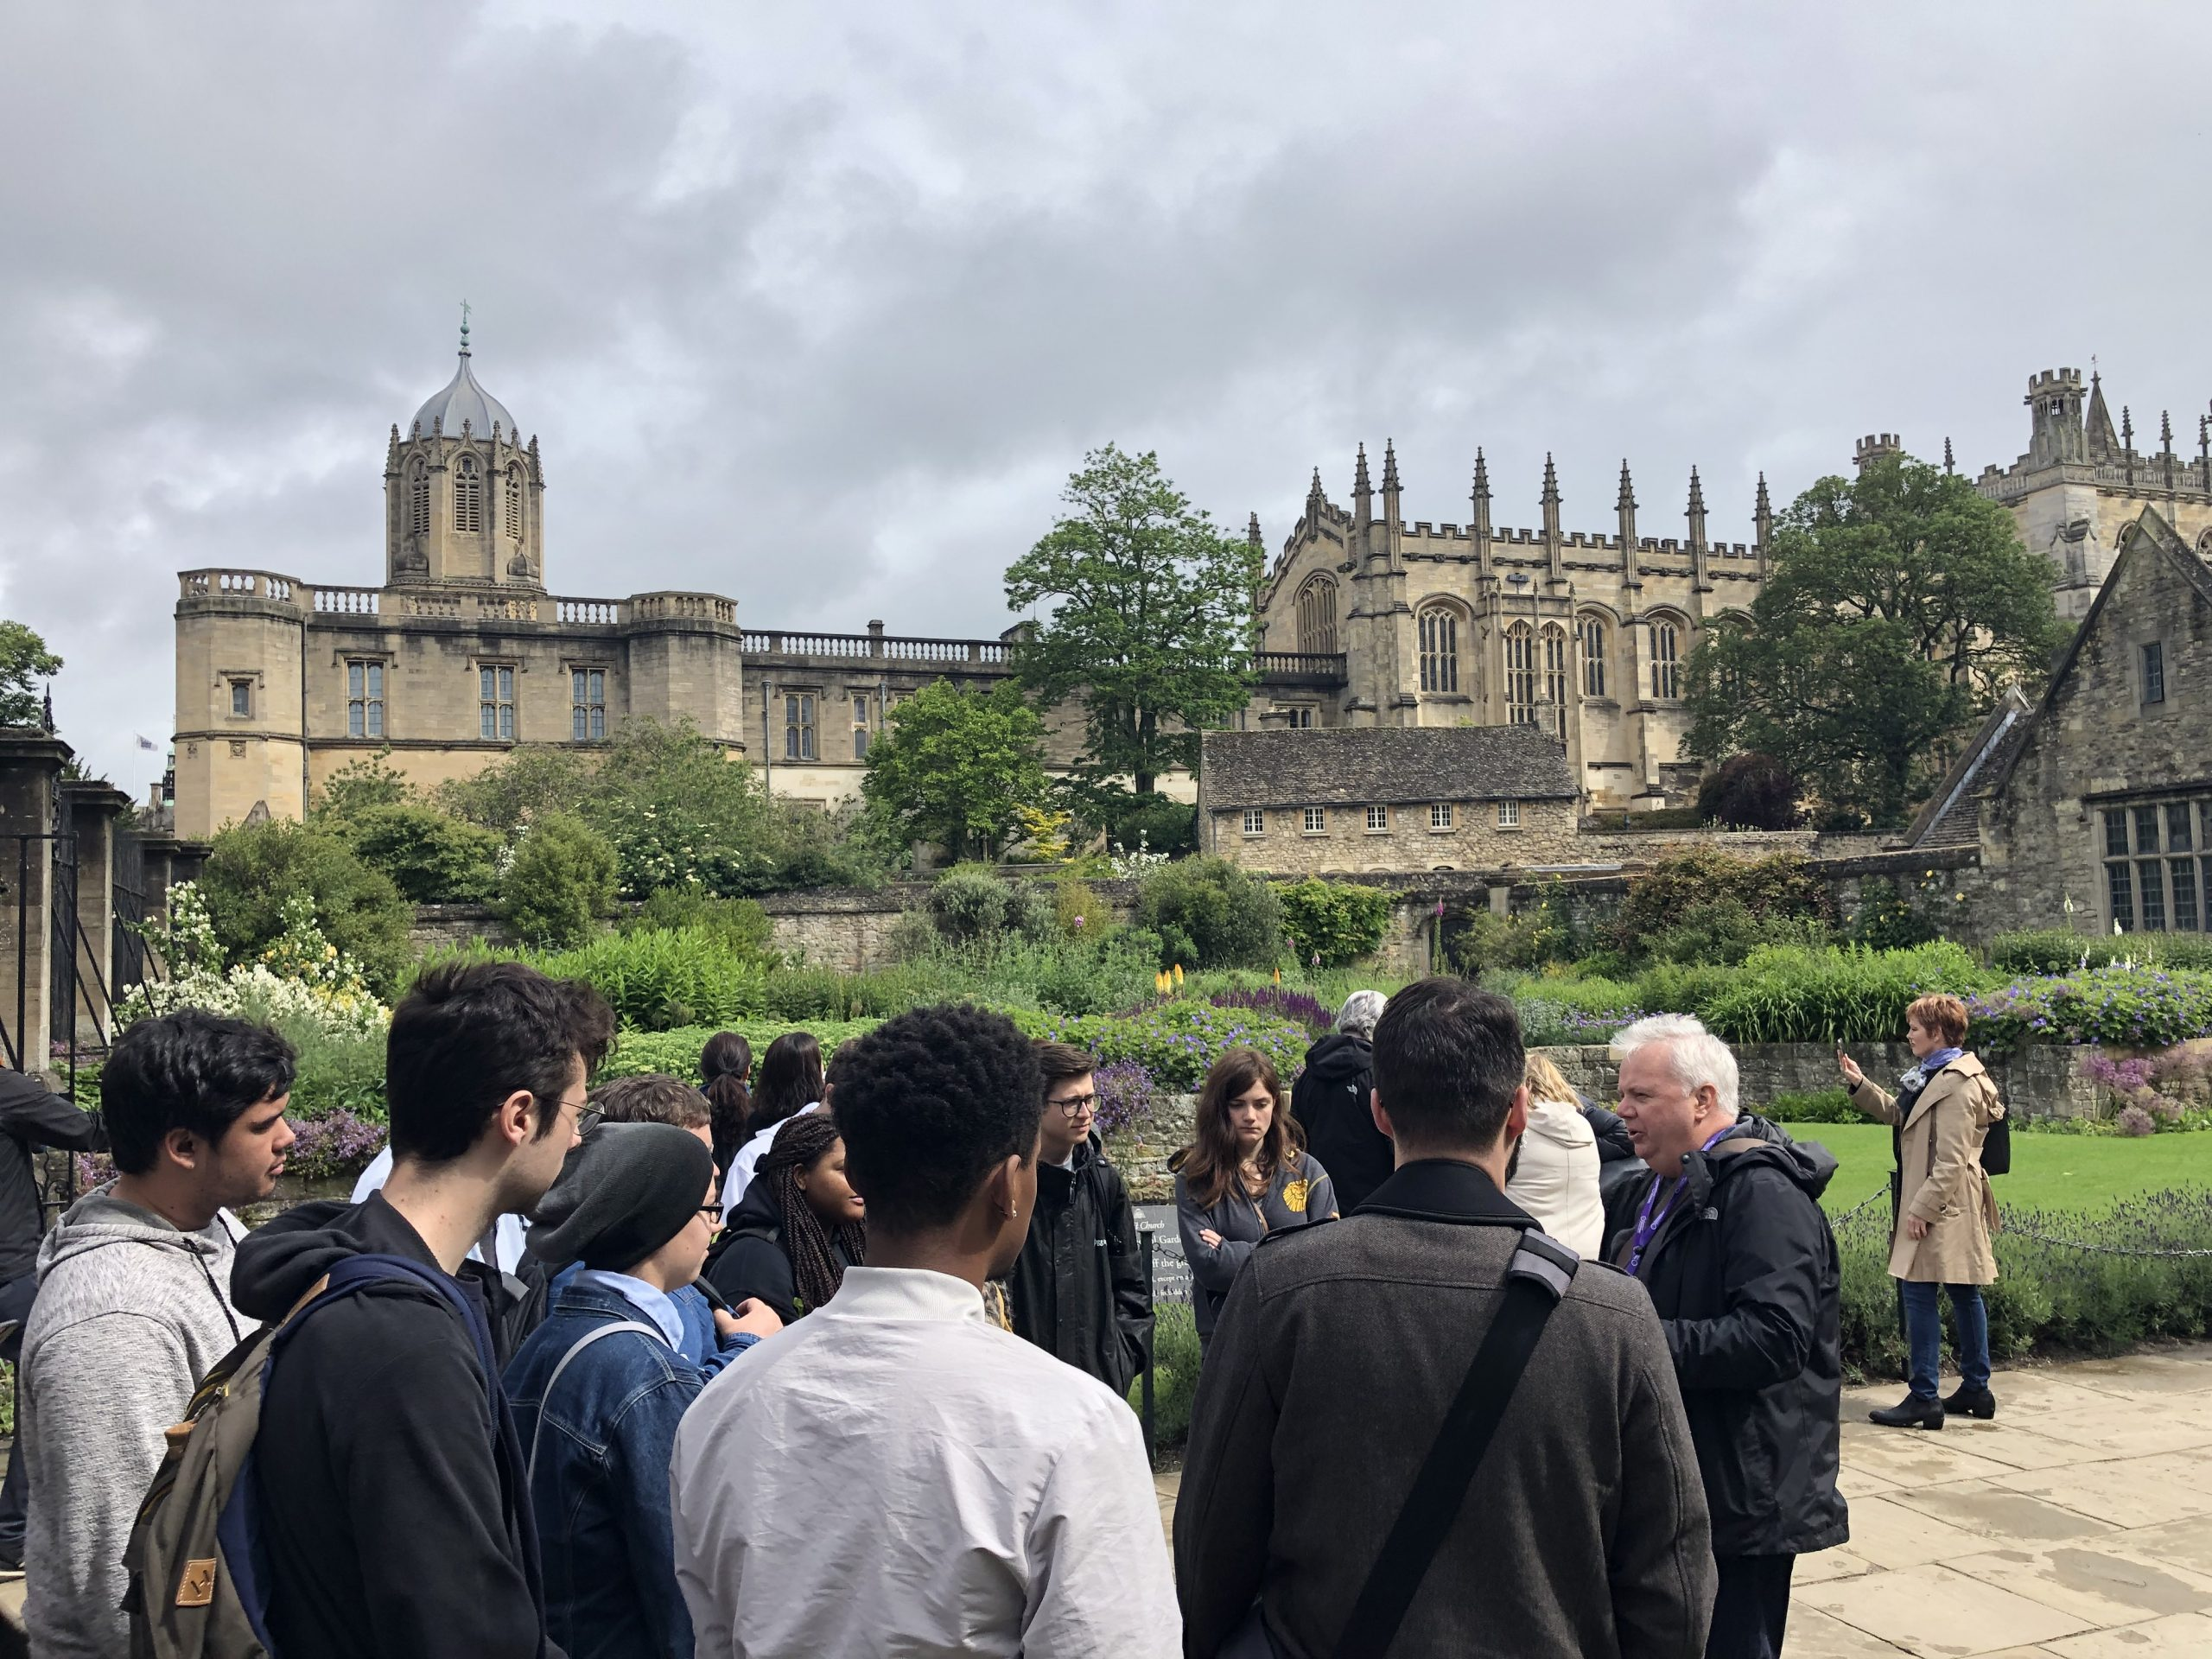 Meeting our guide in Oxford